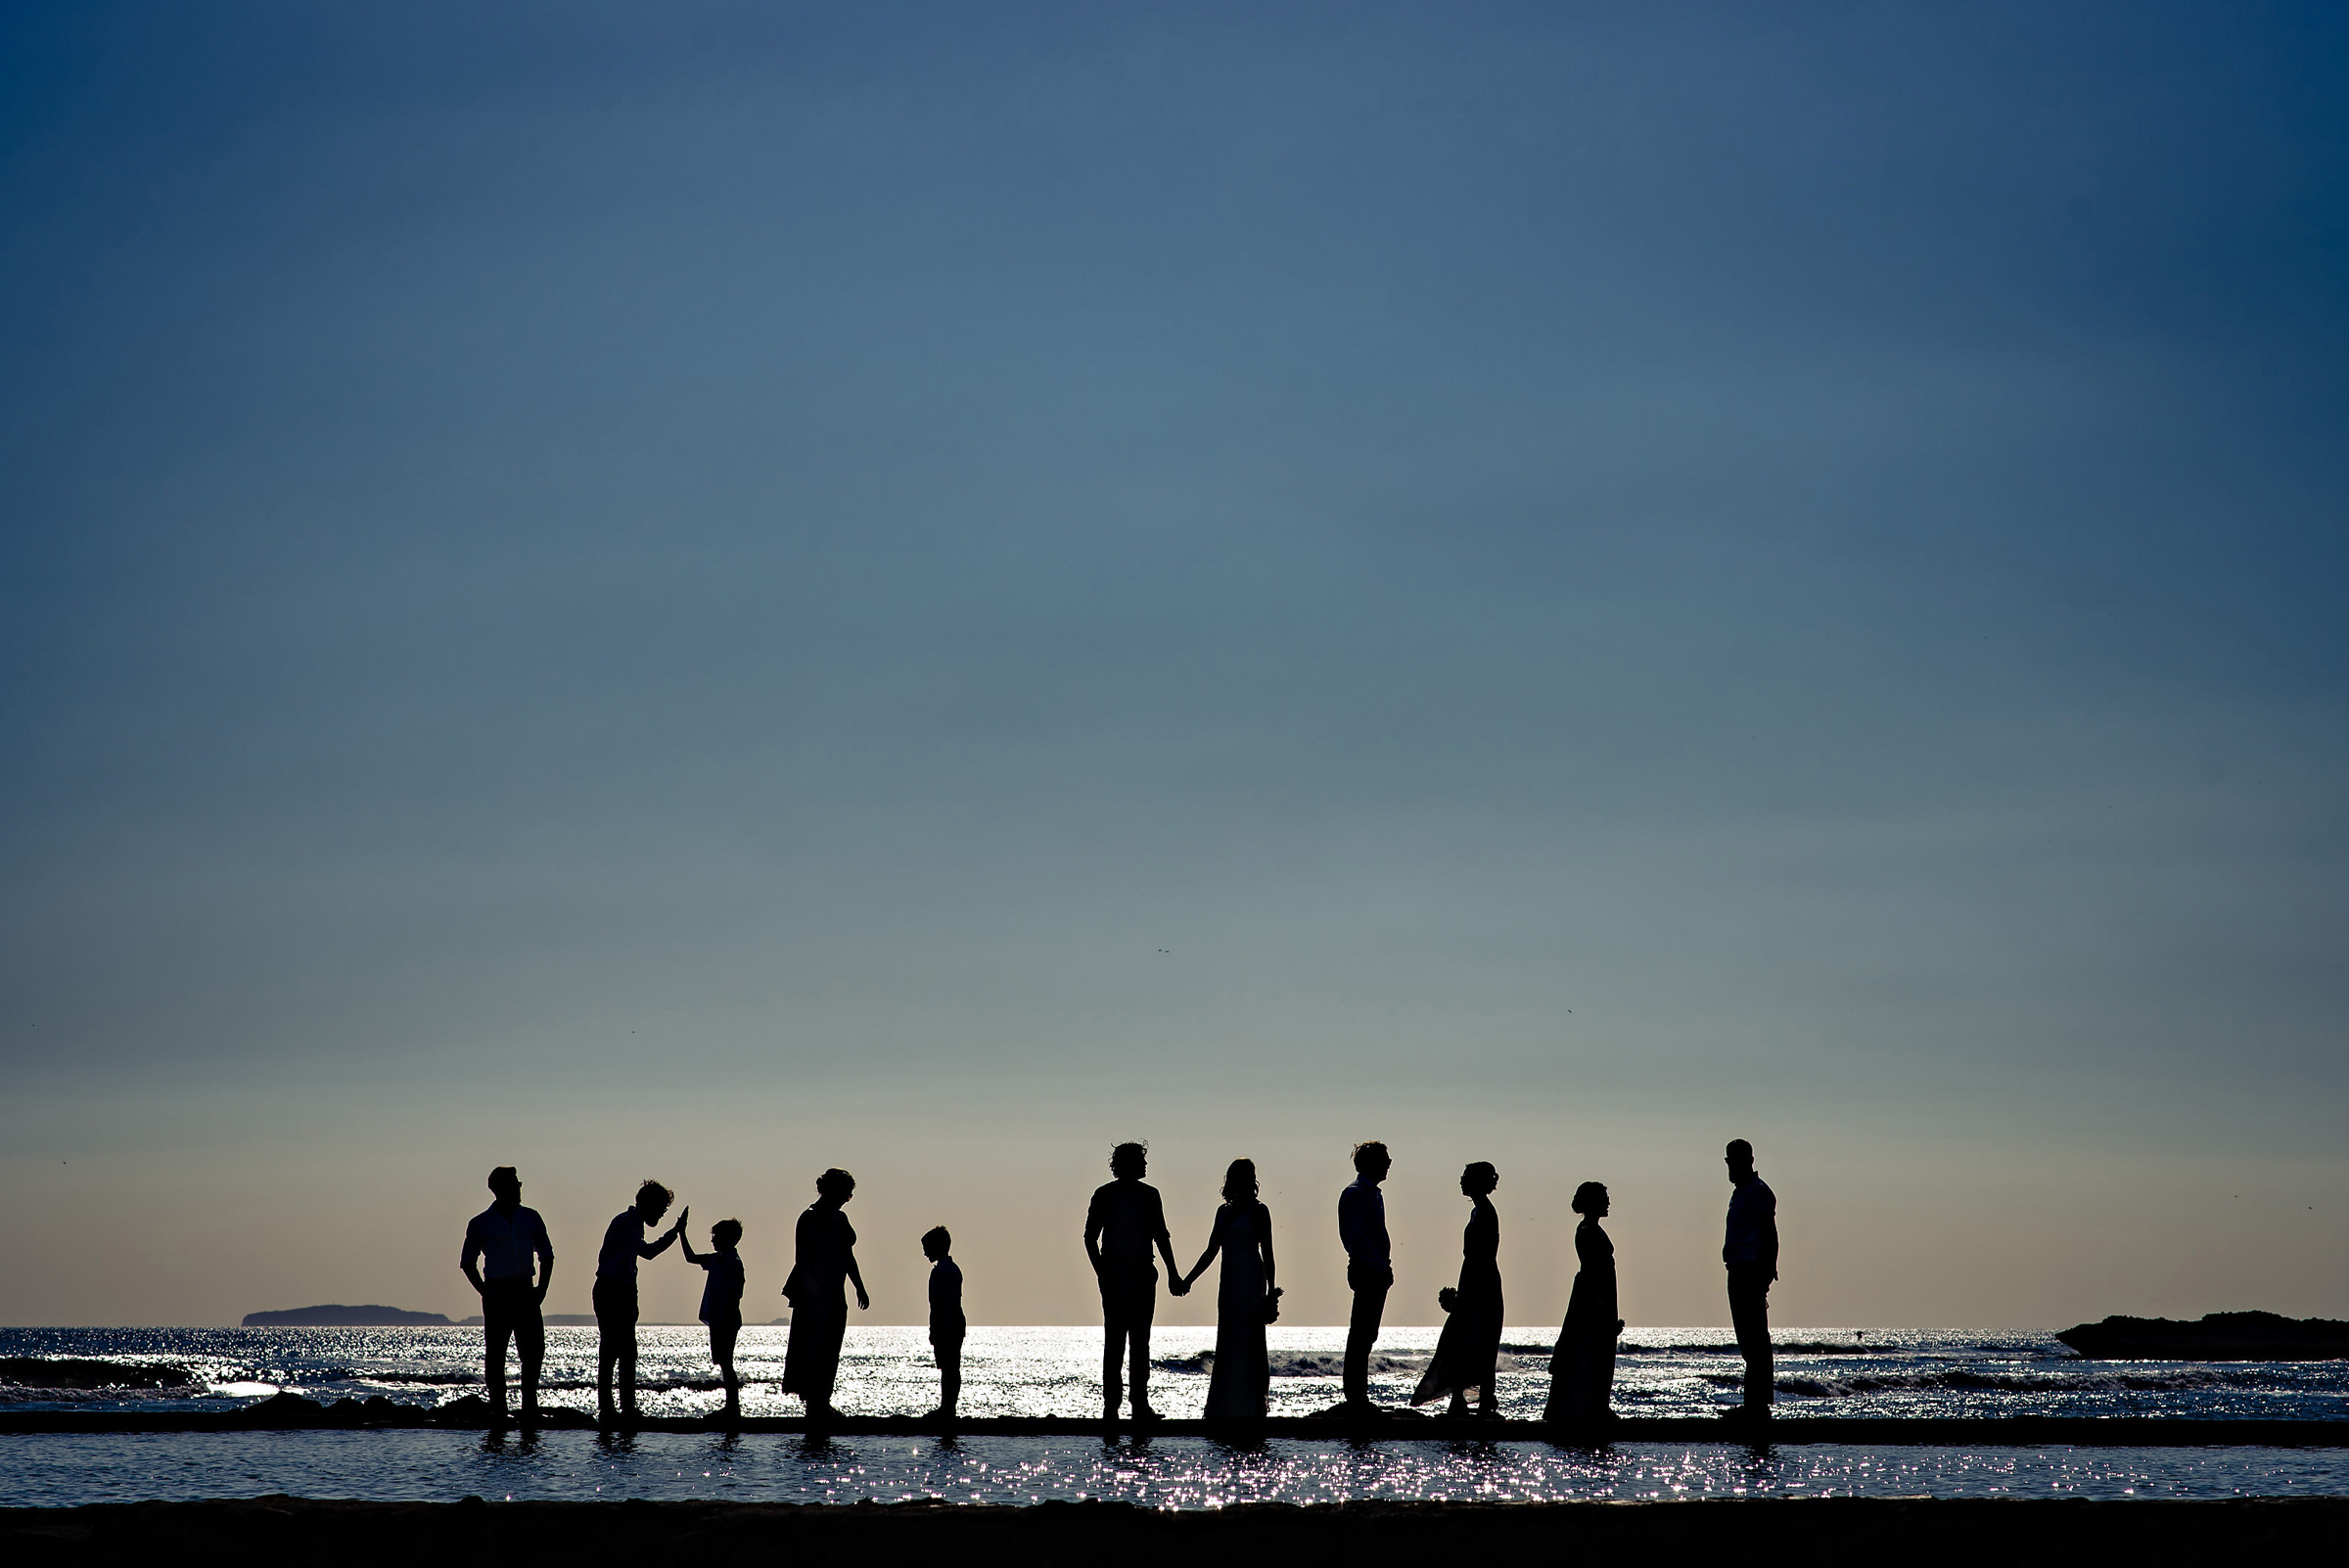 beach-wedding-bridal-party-group-shot-silhouette-at-surfs-edge-moore-photography-canada-worlds-best-wedding-photos